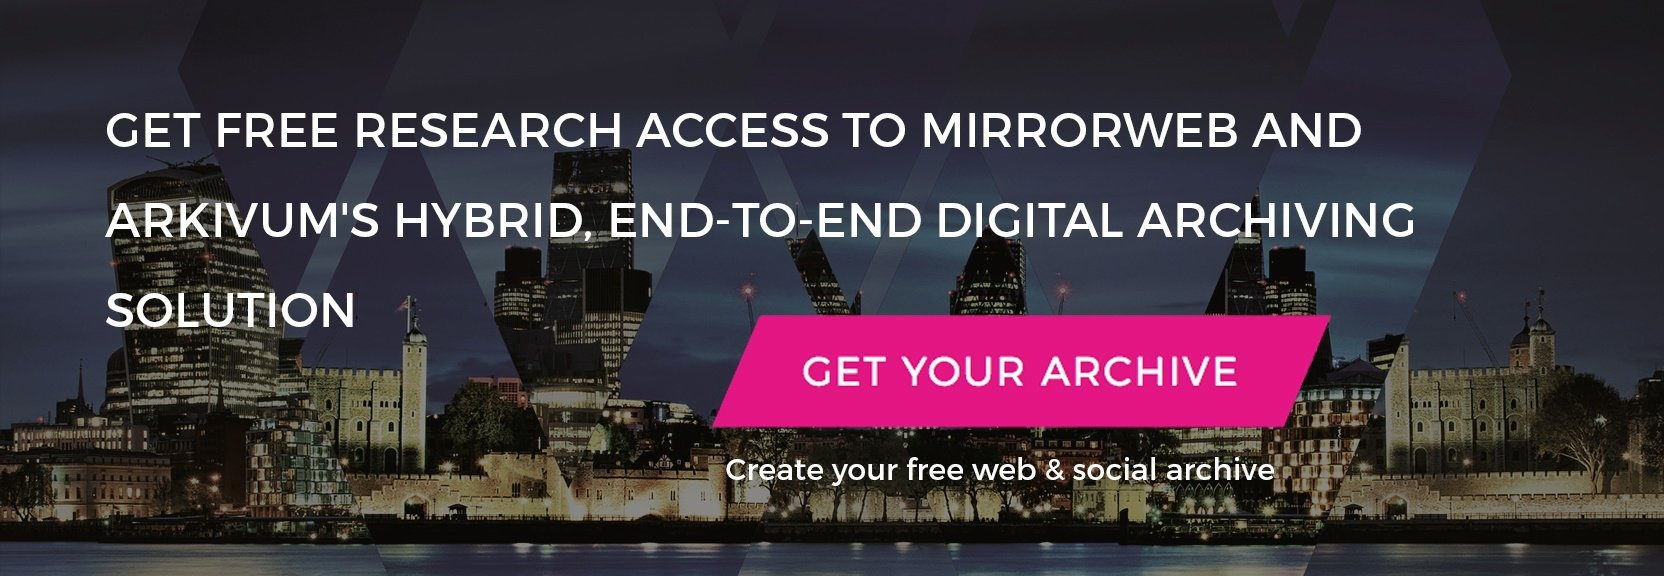 Get Free Access to MirrorWeb & Arkivum's Hybrid, End-to-End Digital Archiving Solution